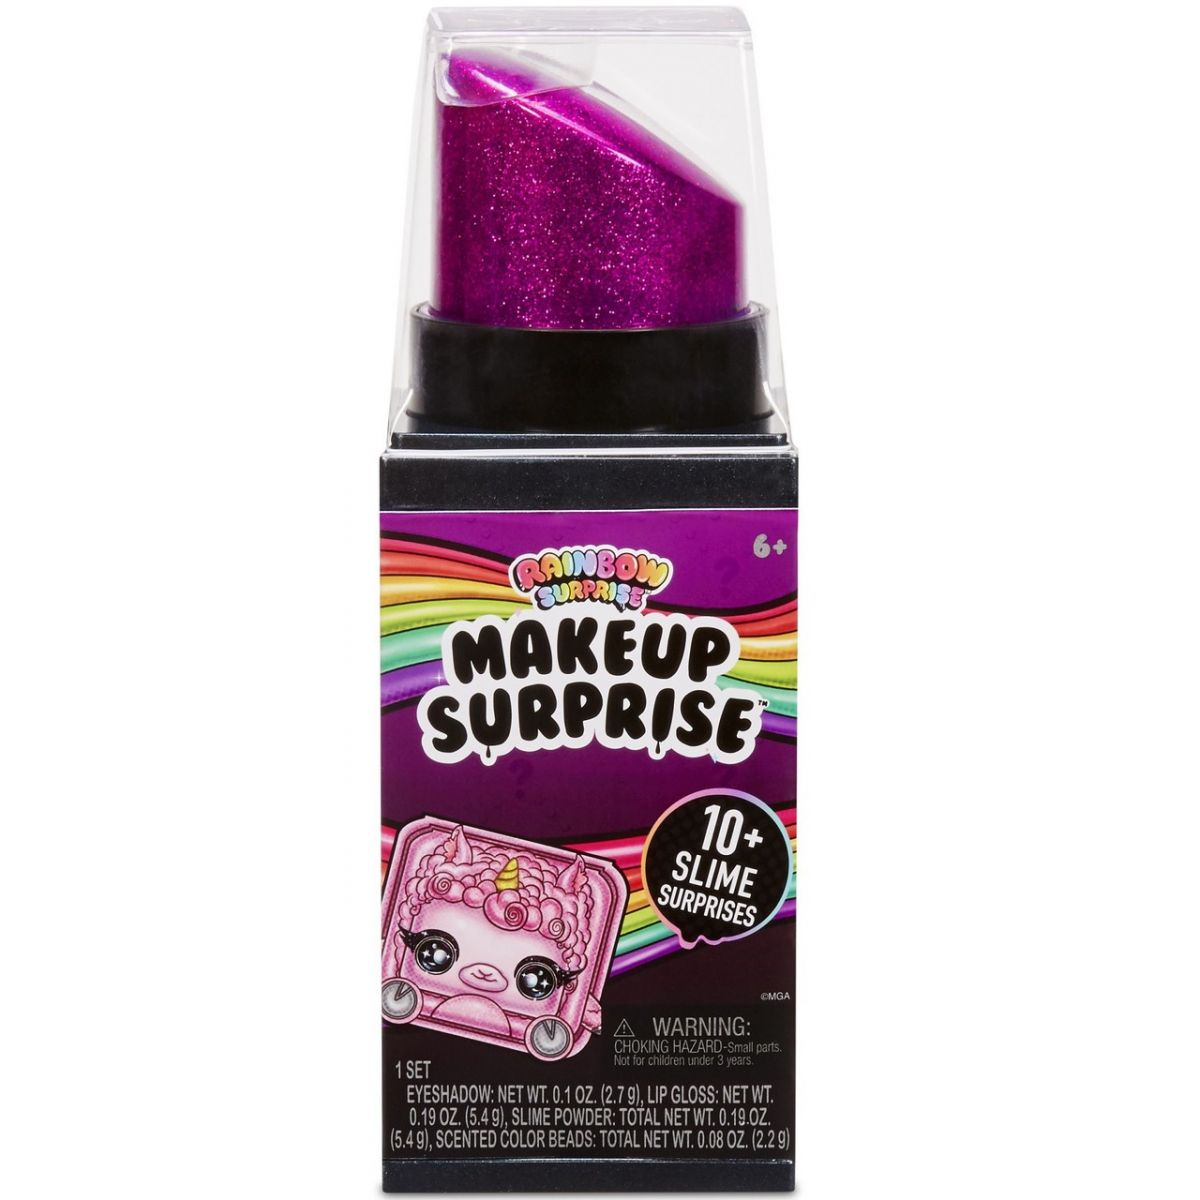 Rainbow Surprise MakeUp Surprise tm. fialová